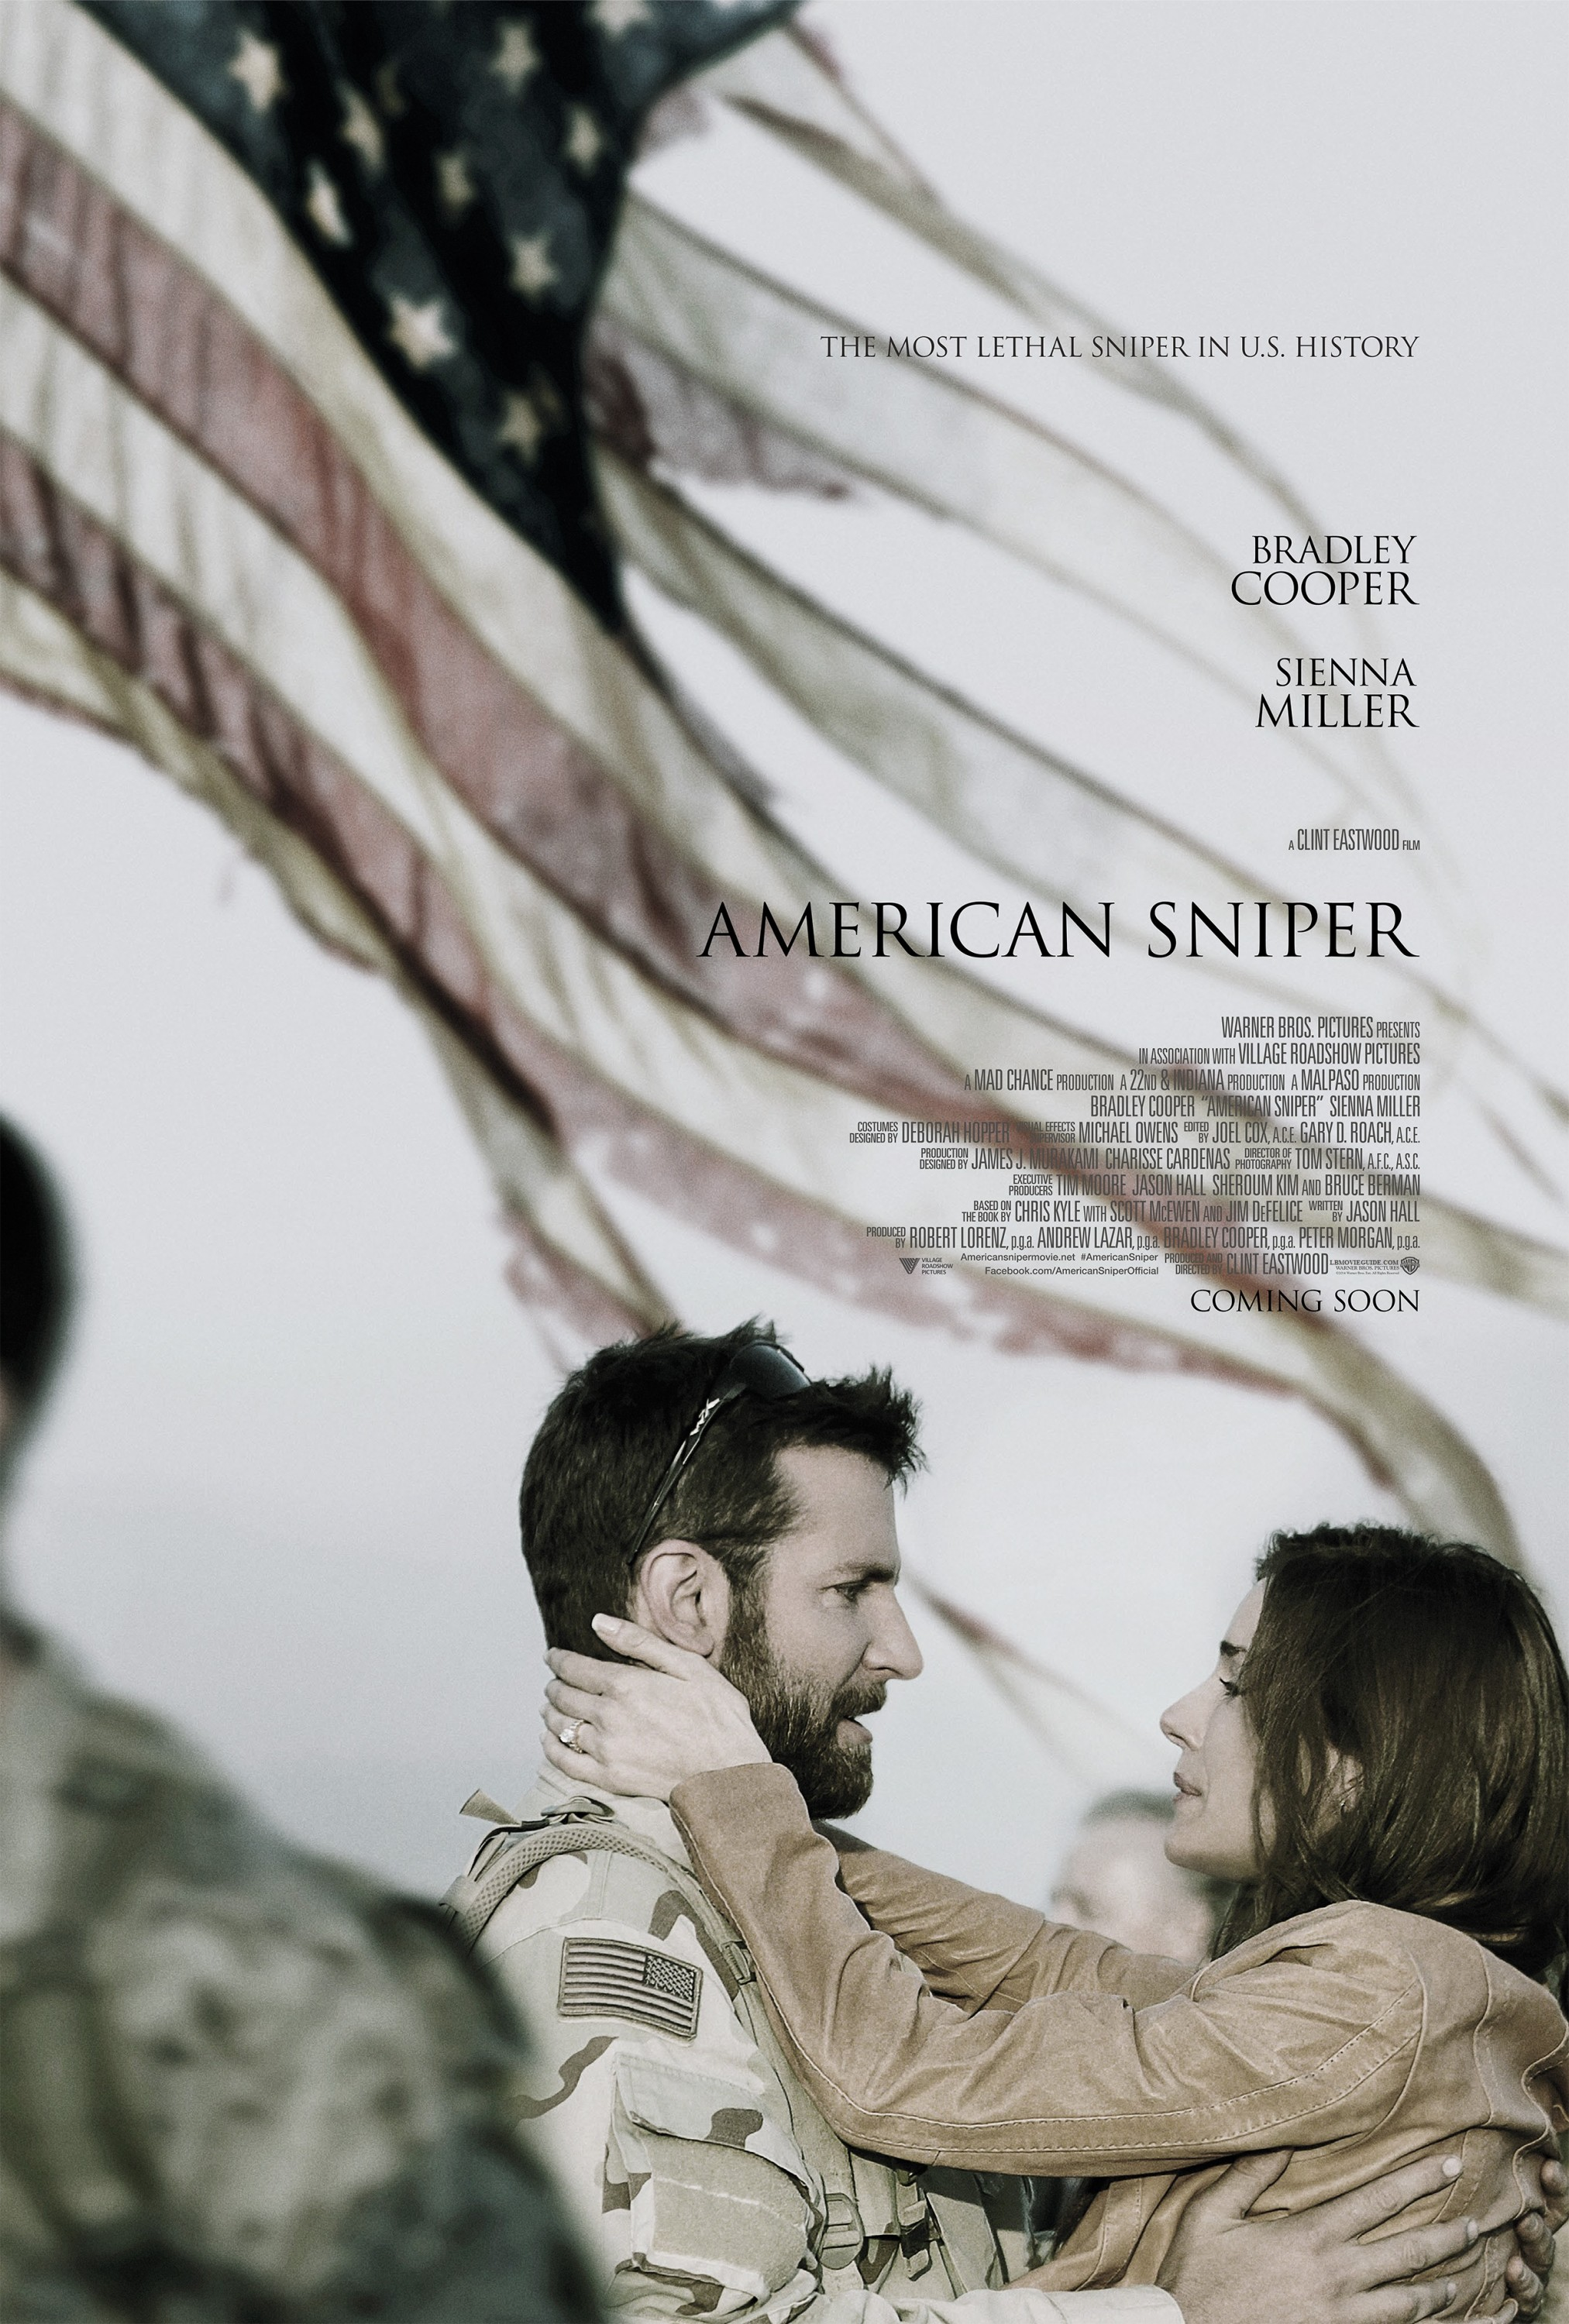 American Sniper-Official Poster XXLG-18DEZEMBRO2014